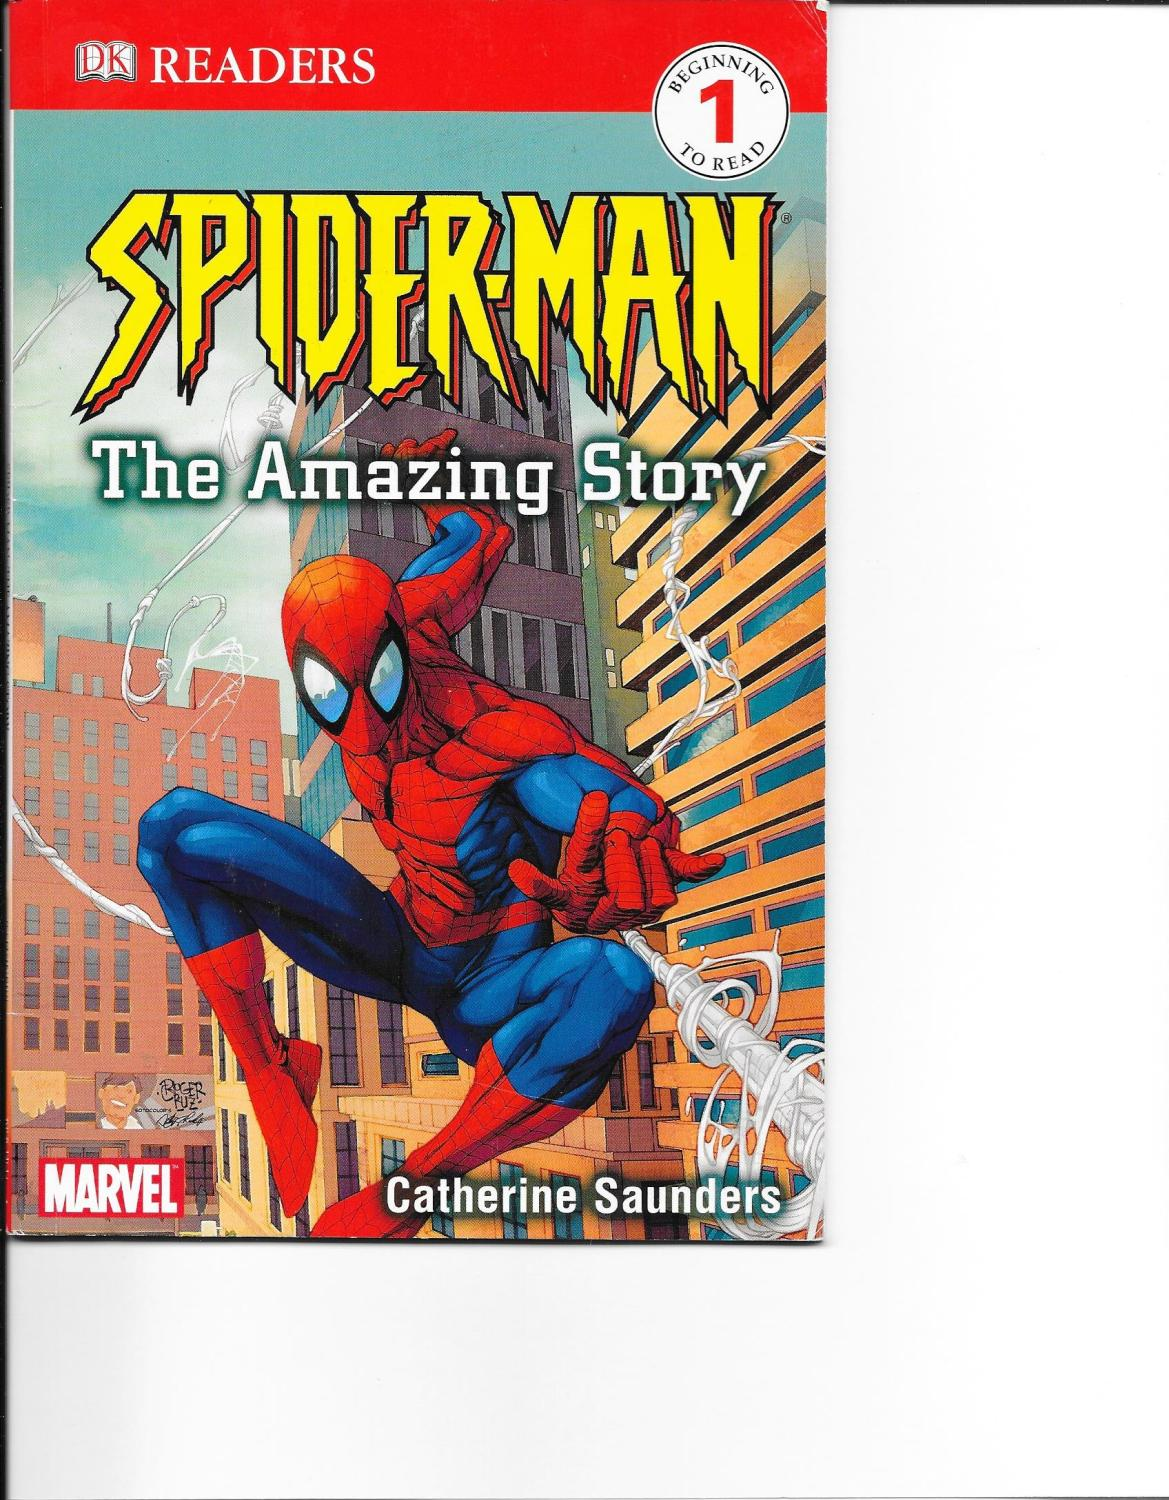 Spider-Man: The Amazing Story (DK READERS) - Saunders, Catherine